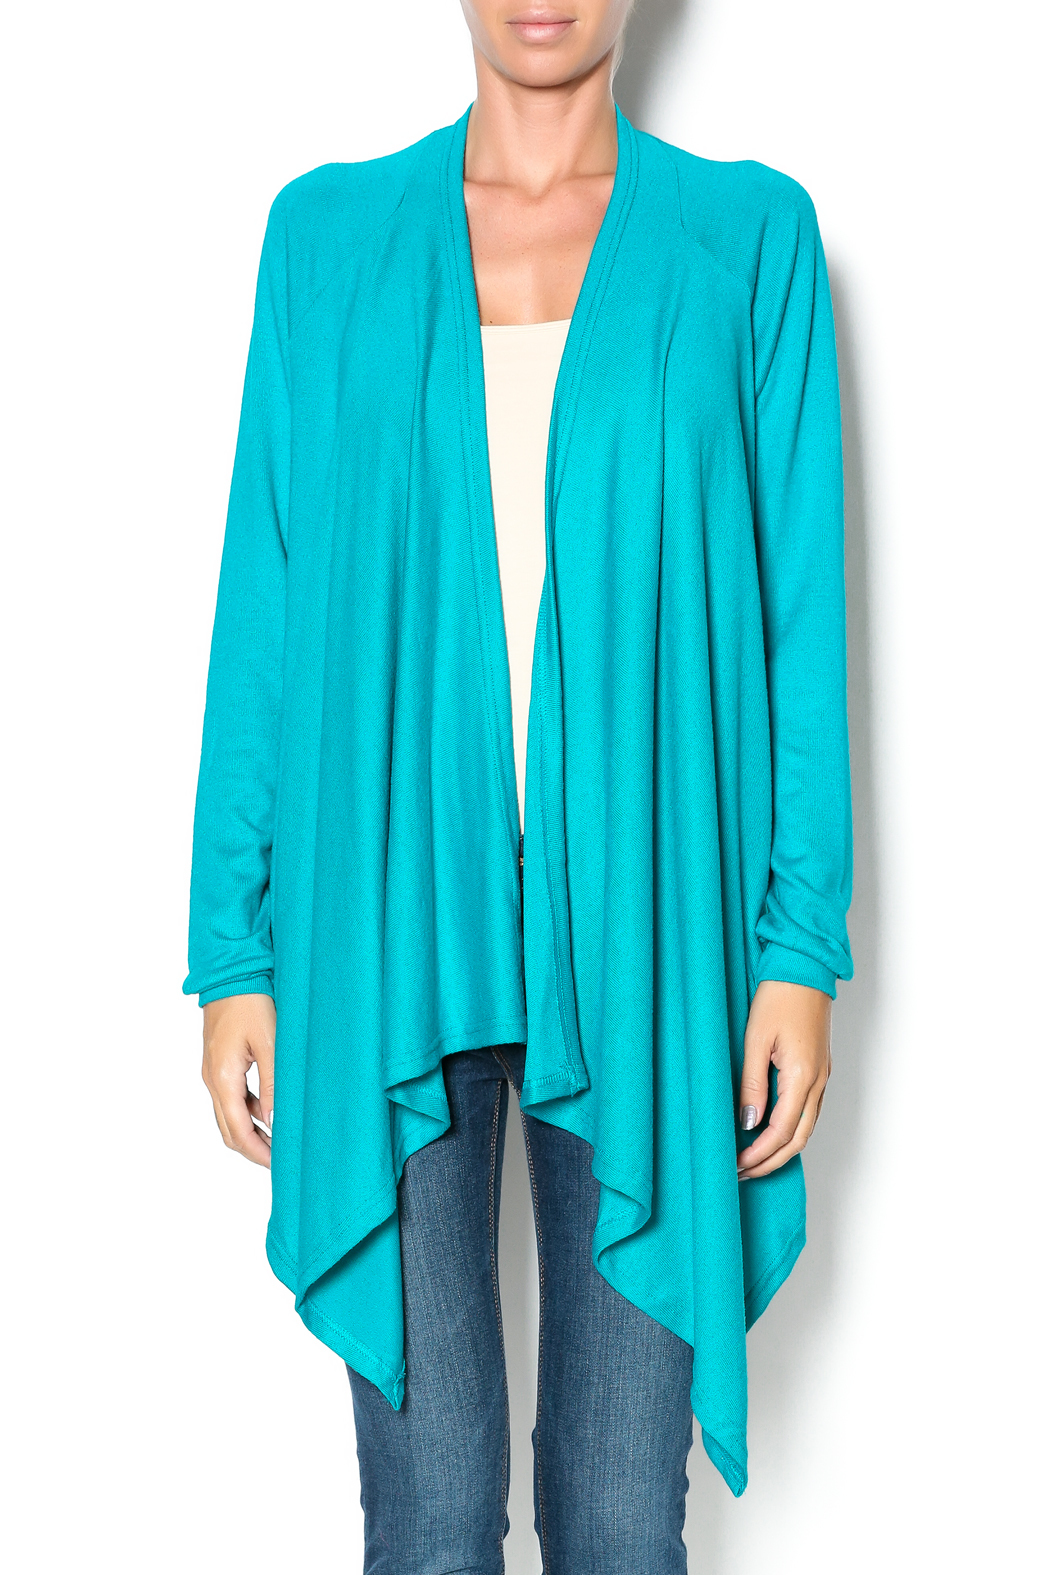 All For Color Teal Waterfall Cardigan from New York by Ruffles ...